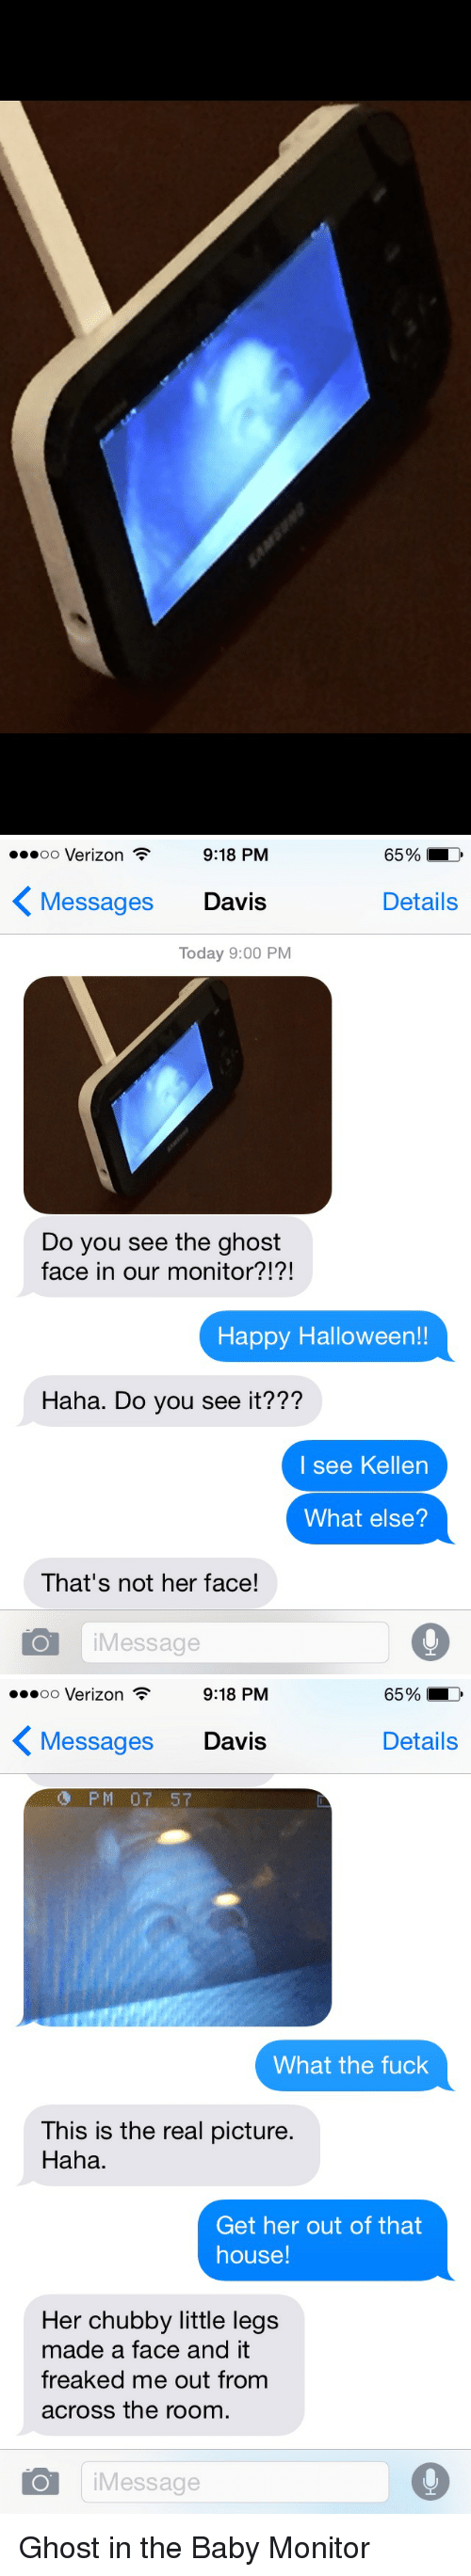 baby monitor: 9:18 PM  65%  oo Verizon  Messages Davis  Details  Today 9:00 PM  Do you see the ghost  face in our monitor?!?!  Happy Halloween!!  Haha. Do you see it???  I see Kellen  What else?  That's not her face!  Message   9:18 PM  65%  oo Verizon  K Details  Messages Davis  PM 07 57  What the fuck  This is the real picture.  Haha.  Get her out of that  house!  Her chubby little legs  made a face and it  freaked me out from  across the room.  O i Message Ghost in the Baby Monitor